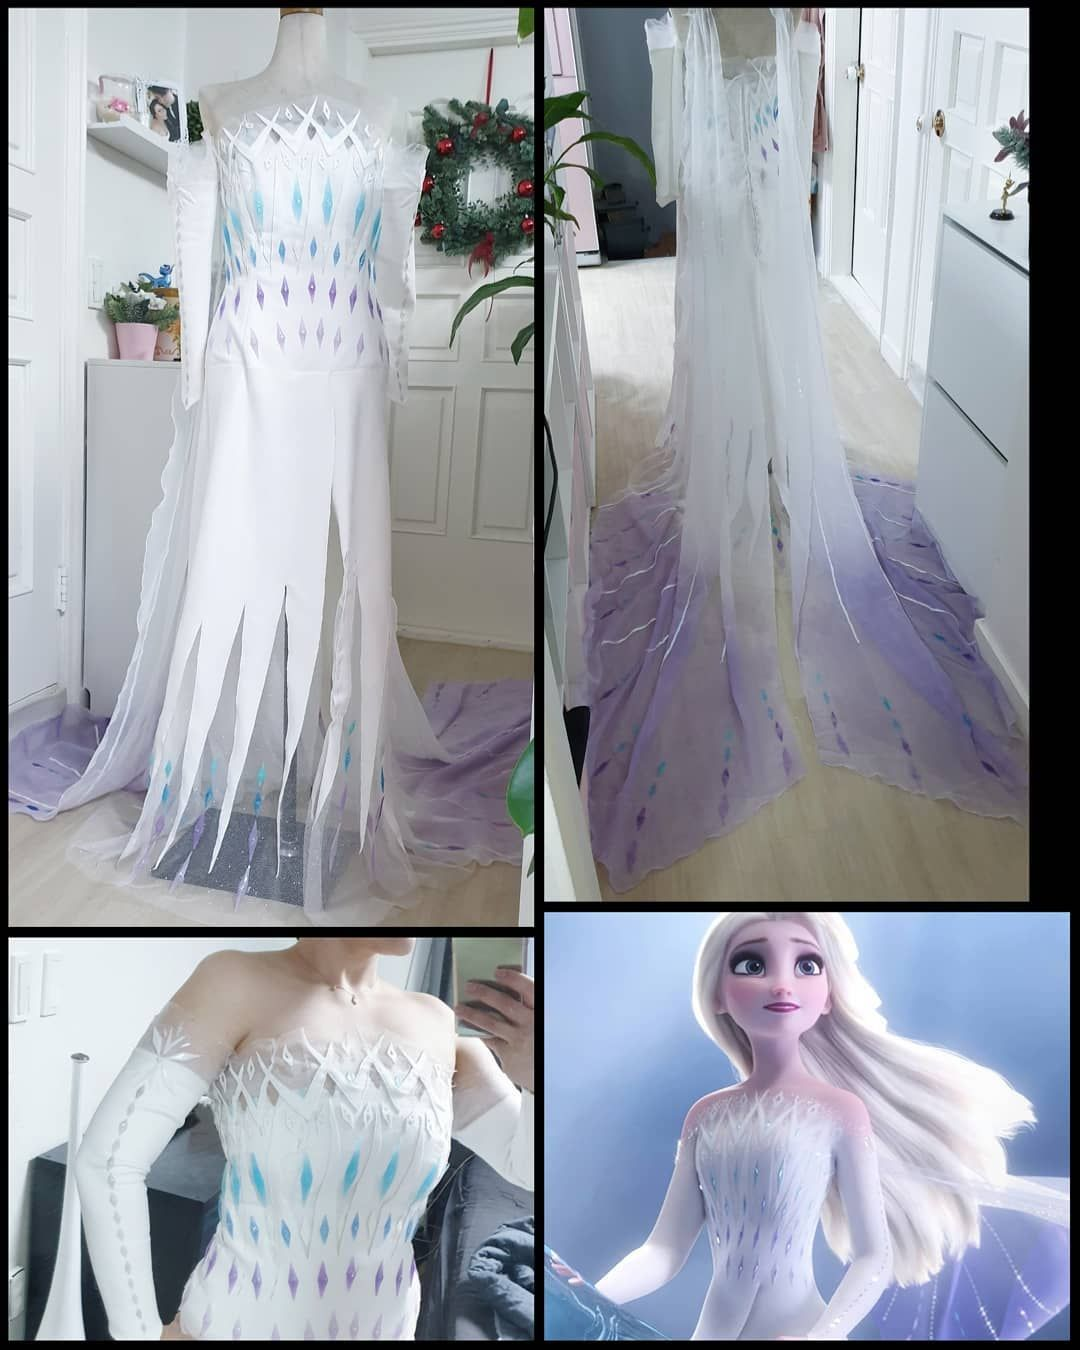 Sakura Chiisai En Instagram Nearly All Get Finish Of My Elsa Spirit Dress Cosplay Only My Trousers Ar In 2020 Elsa Dress Disney Princess Outfits Dresses